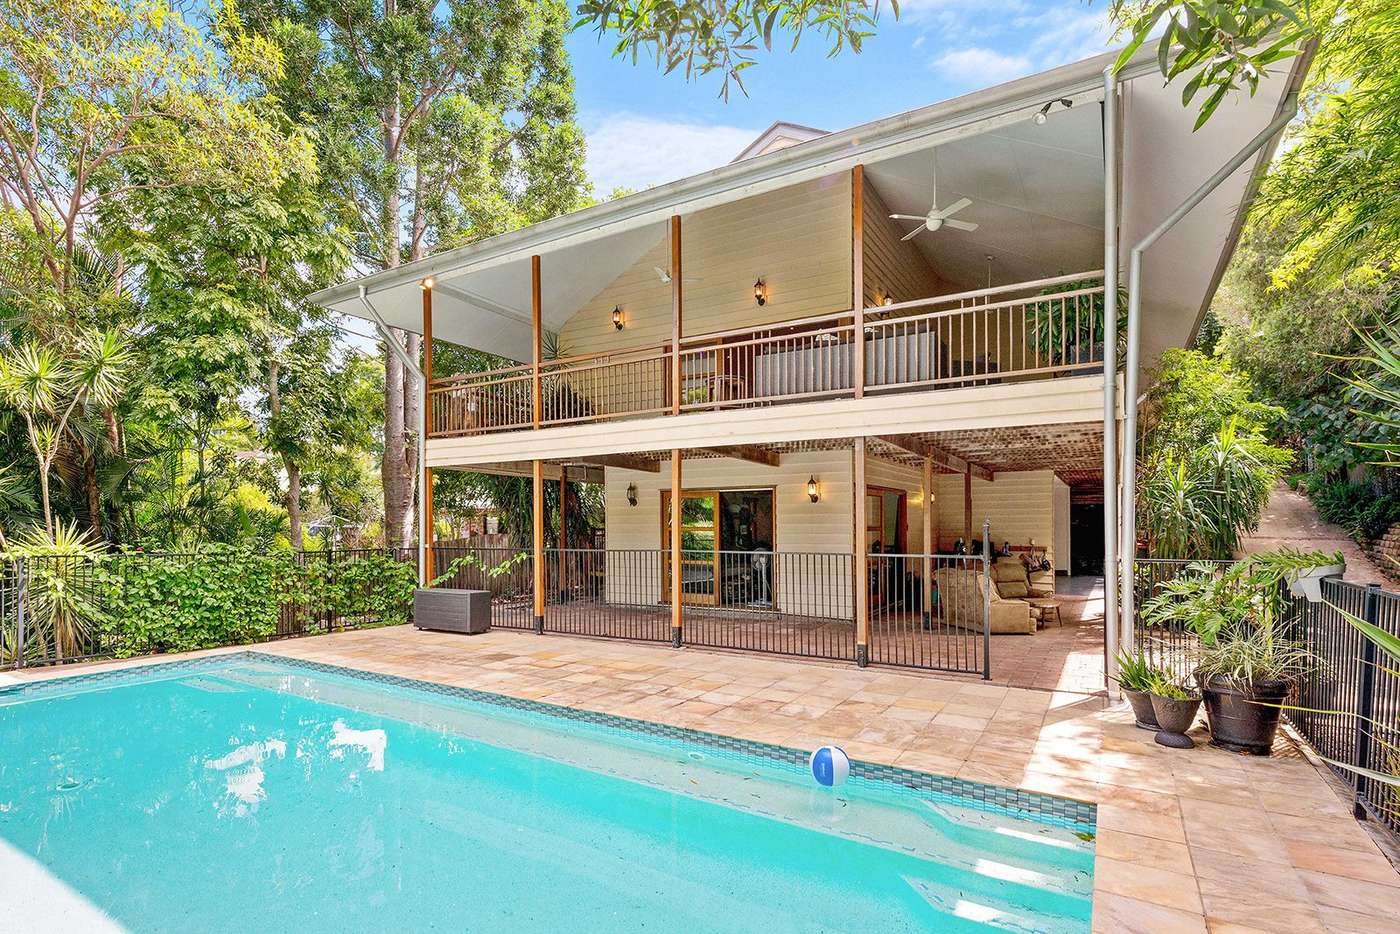 Main view of Homely house listing, 101 Hassall Street, Corinda QLD 4075